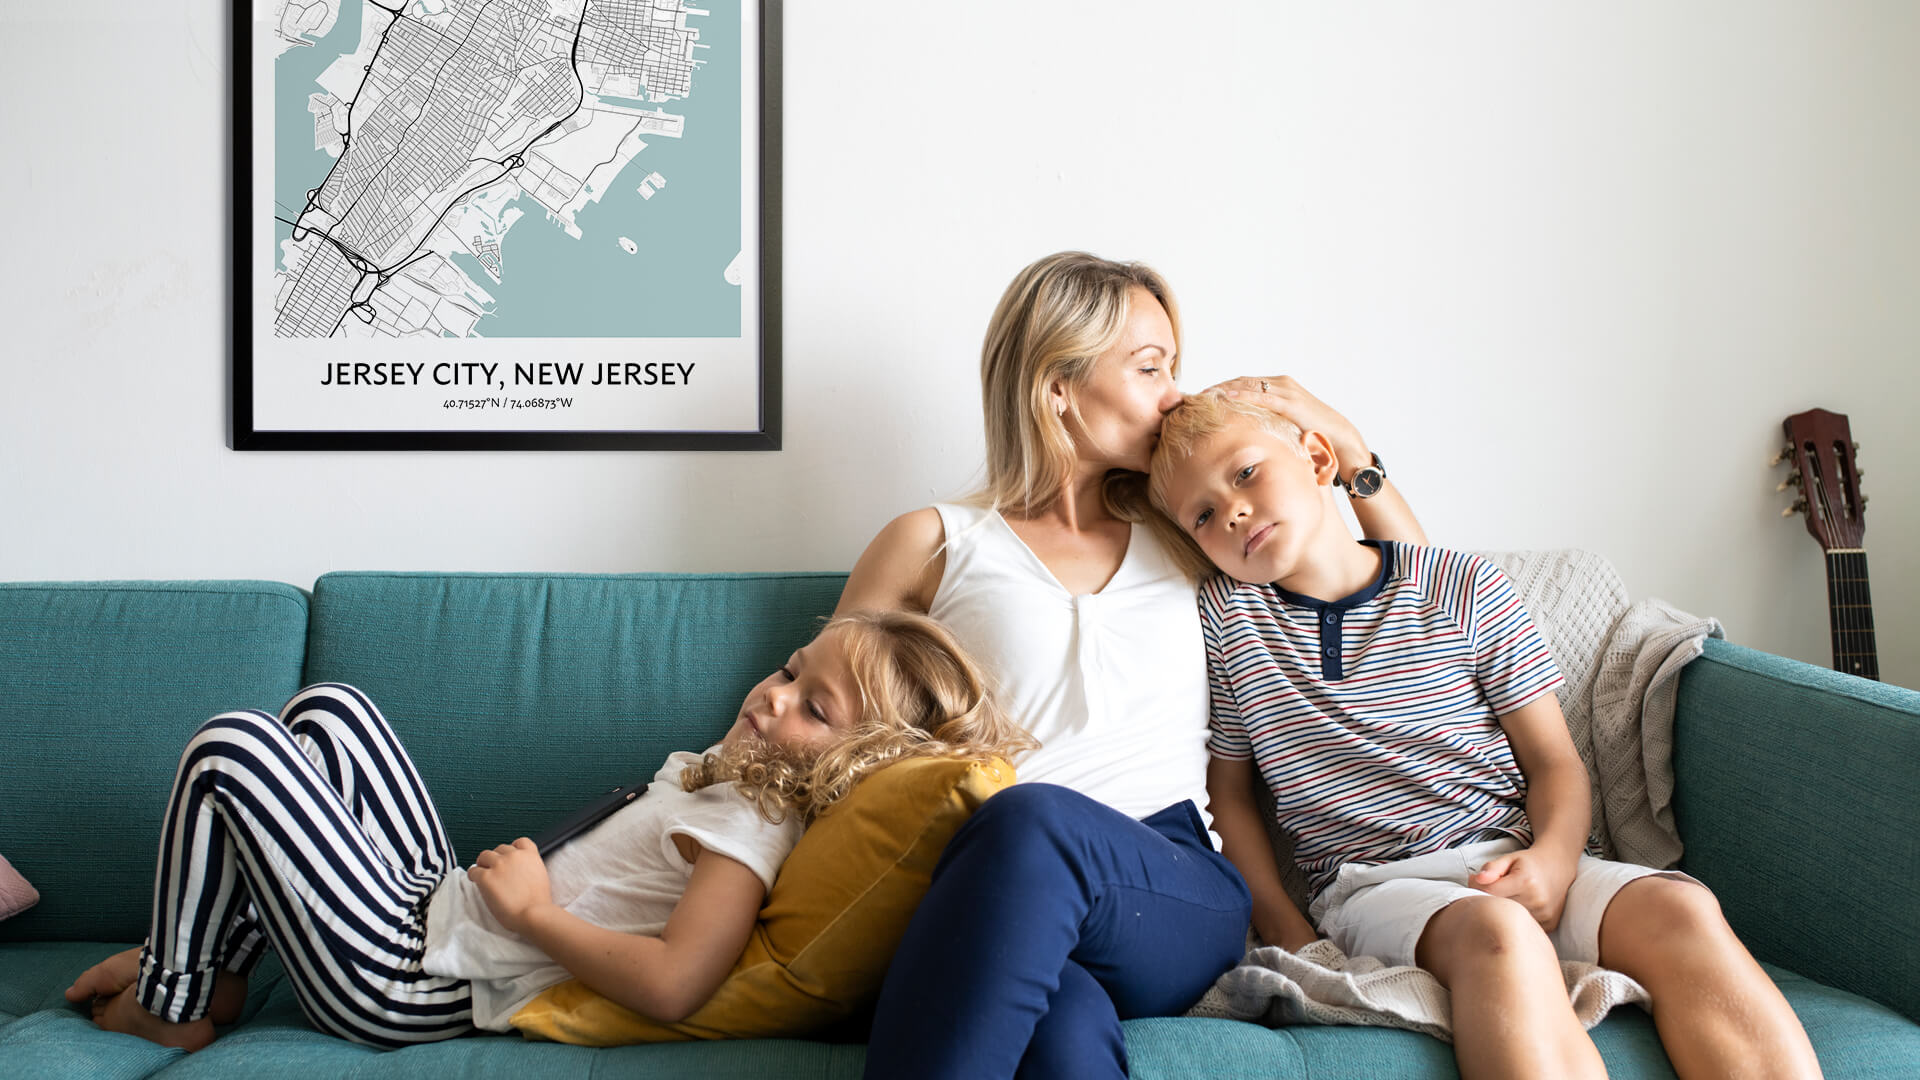 Jersey City map poster